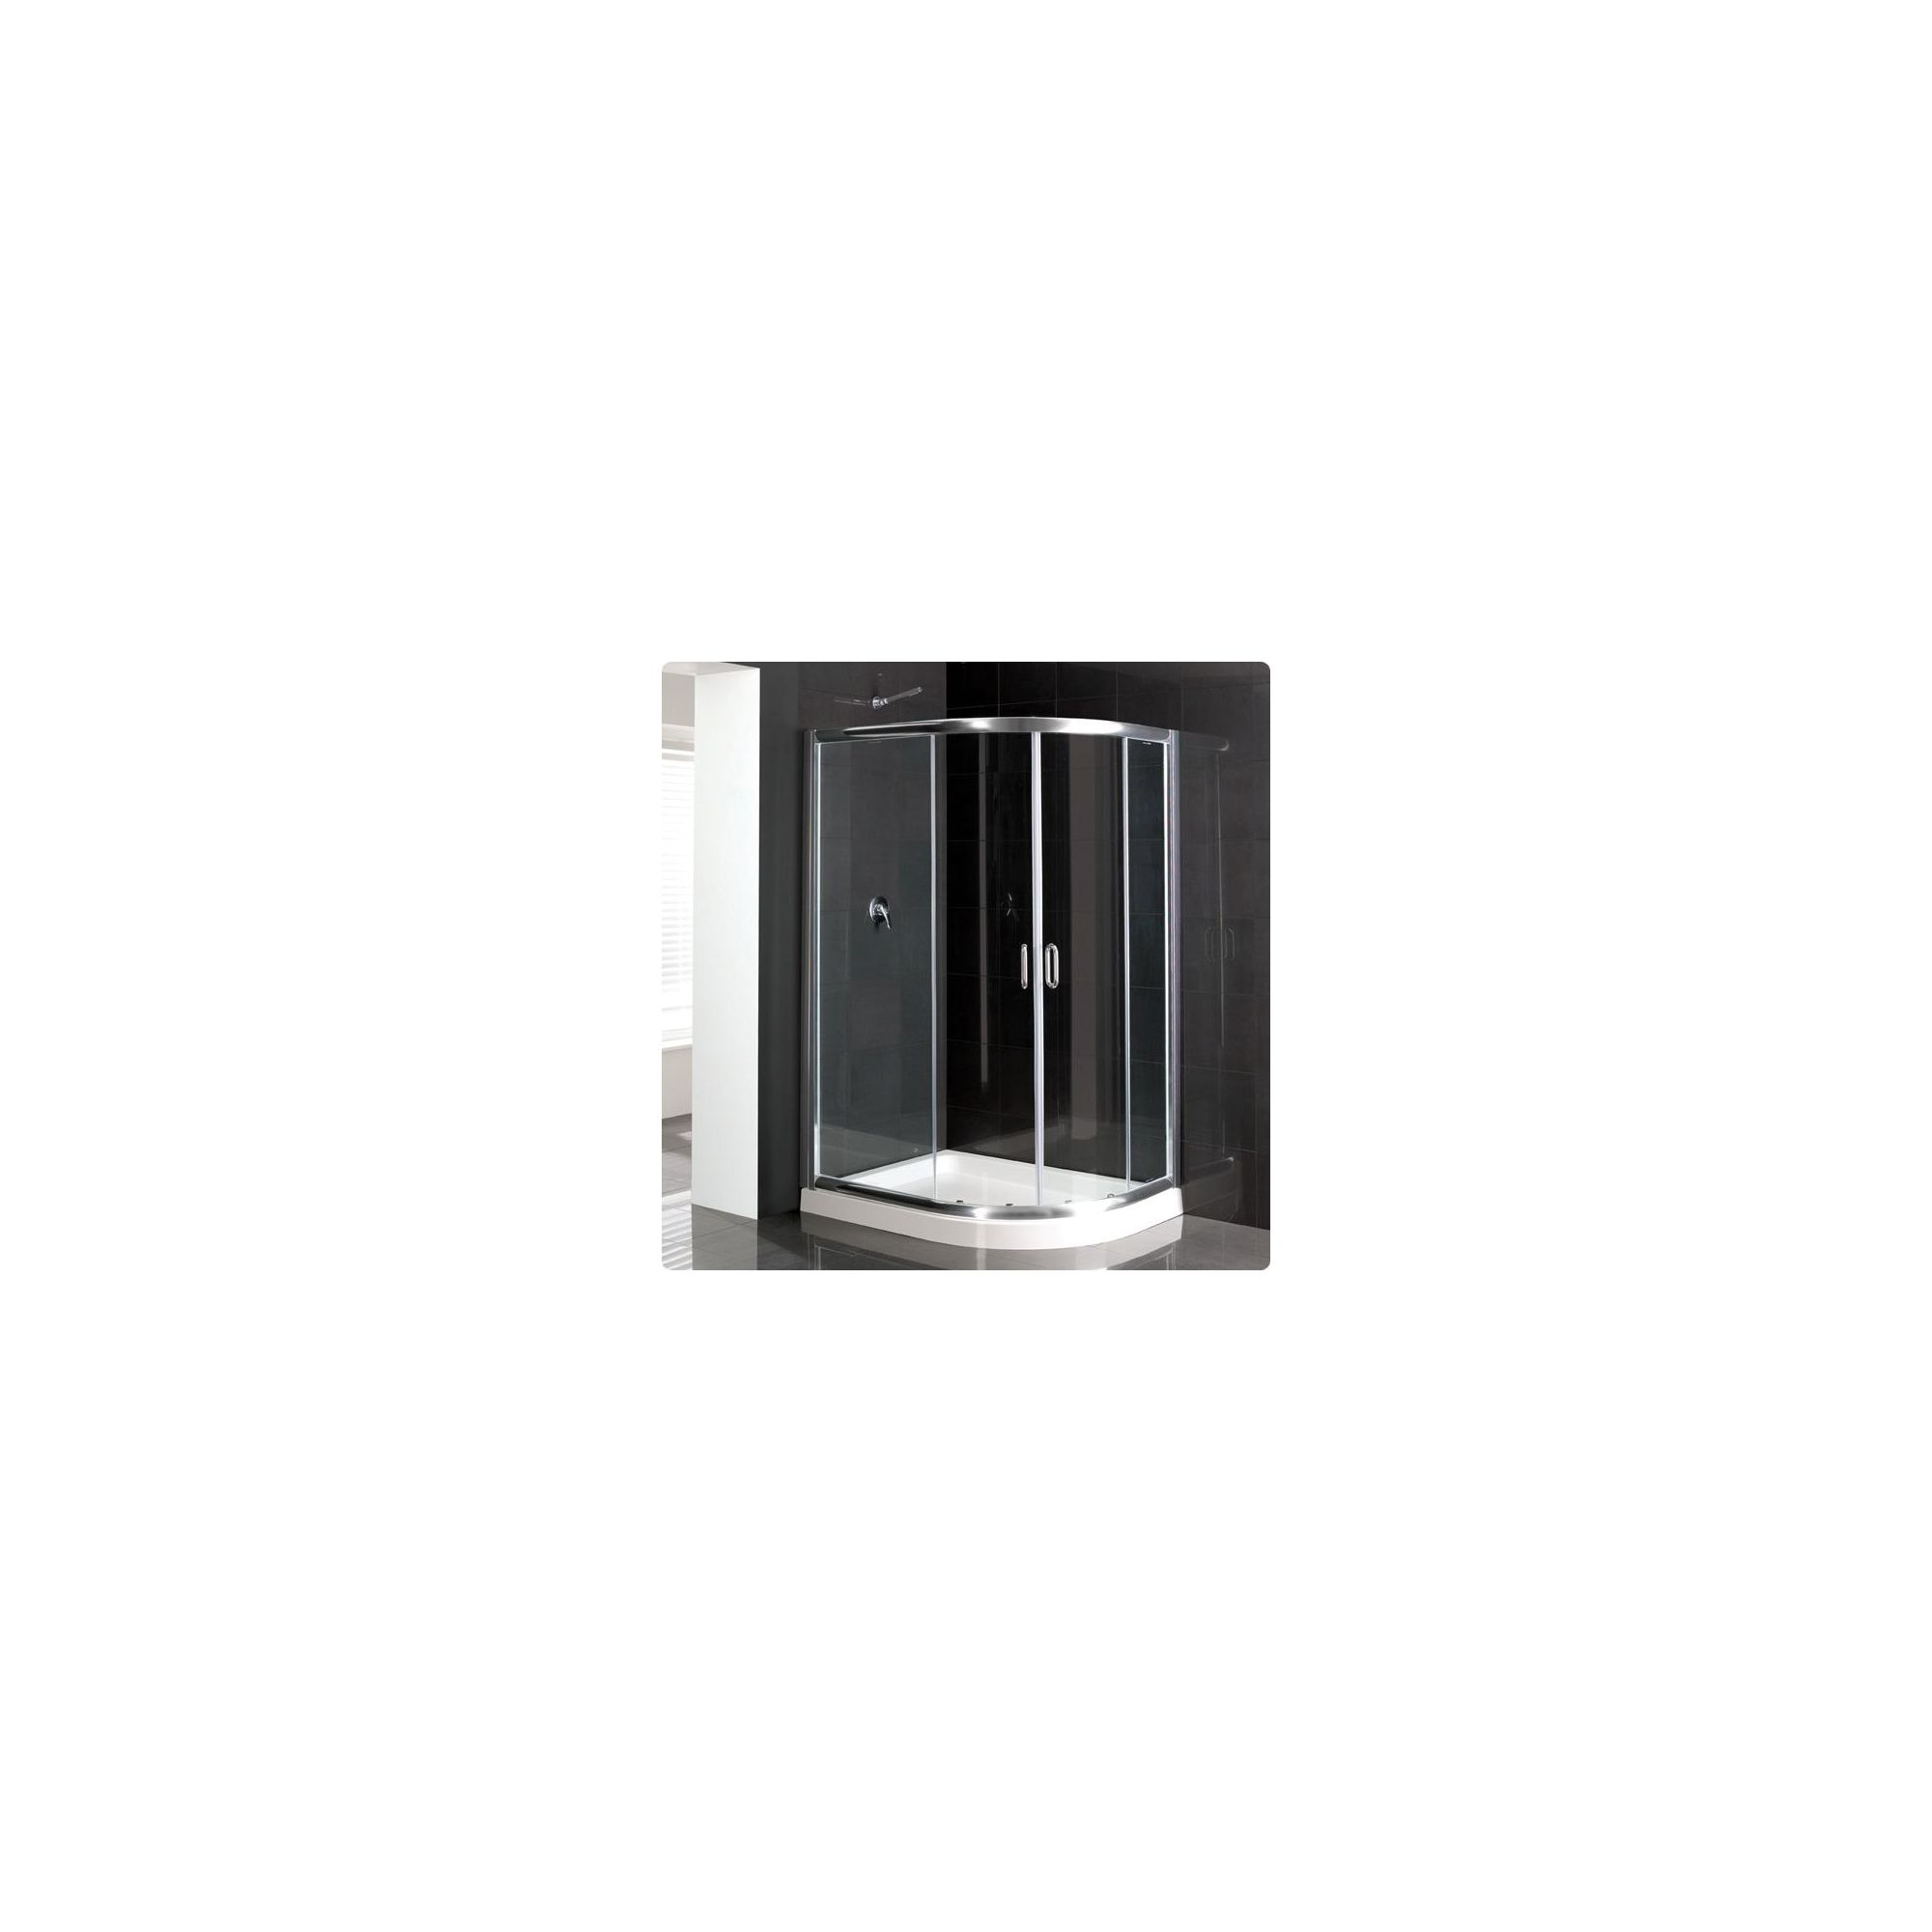 Duchy Elite Silver Offset Quadrant Shower Enclosure (Complete with Tray) 900mm x 800mm, 6mm Glass at Tesco Direct